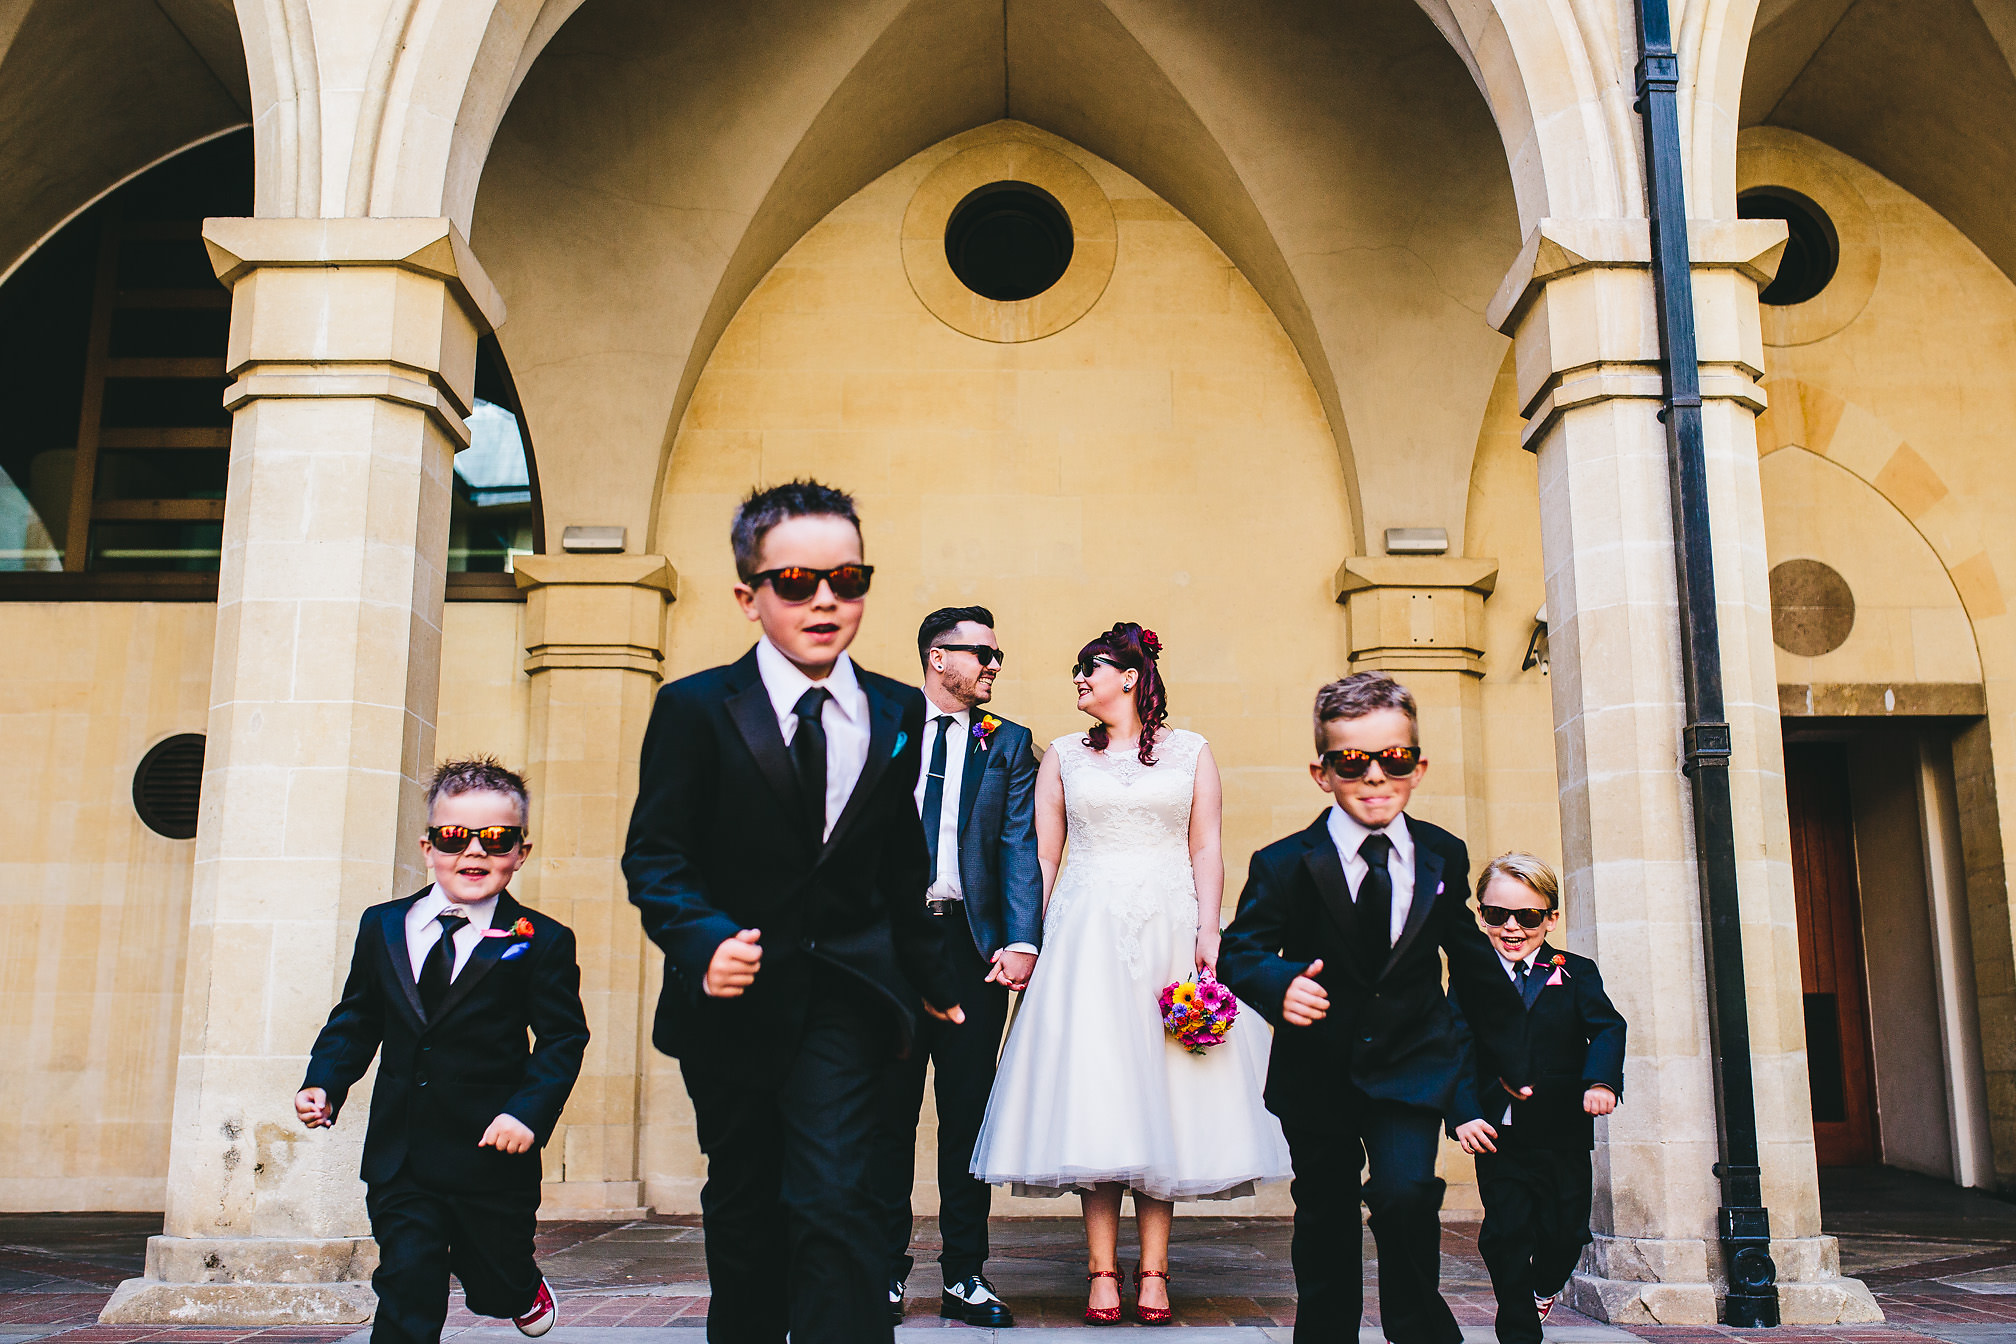 Young wedding guests running towards the camera